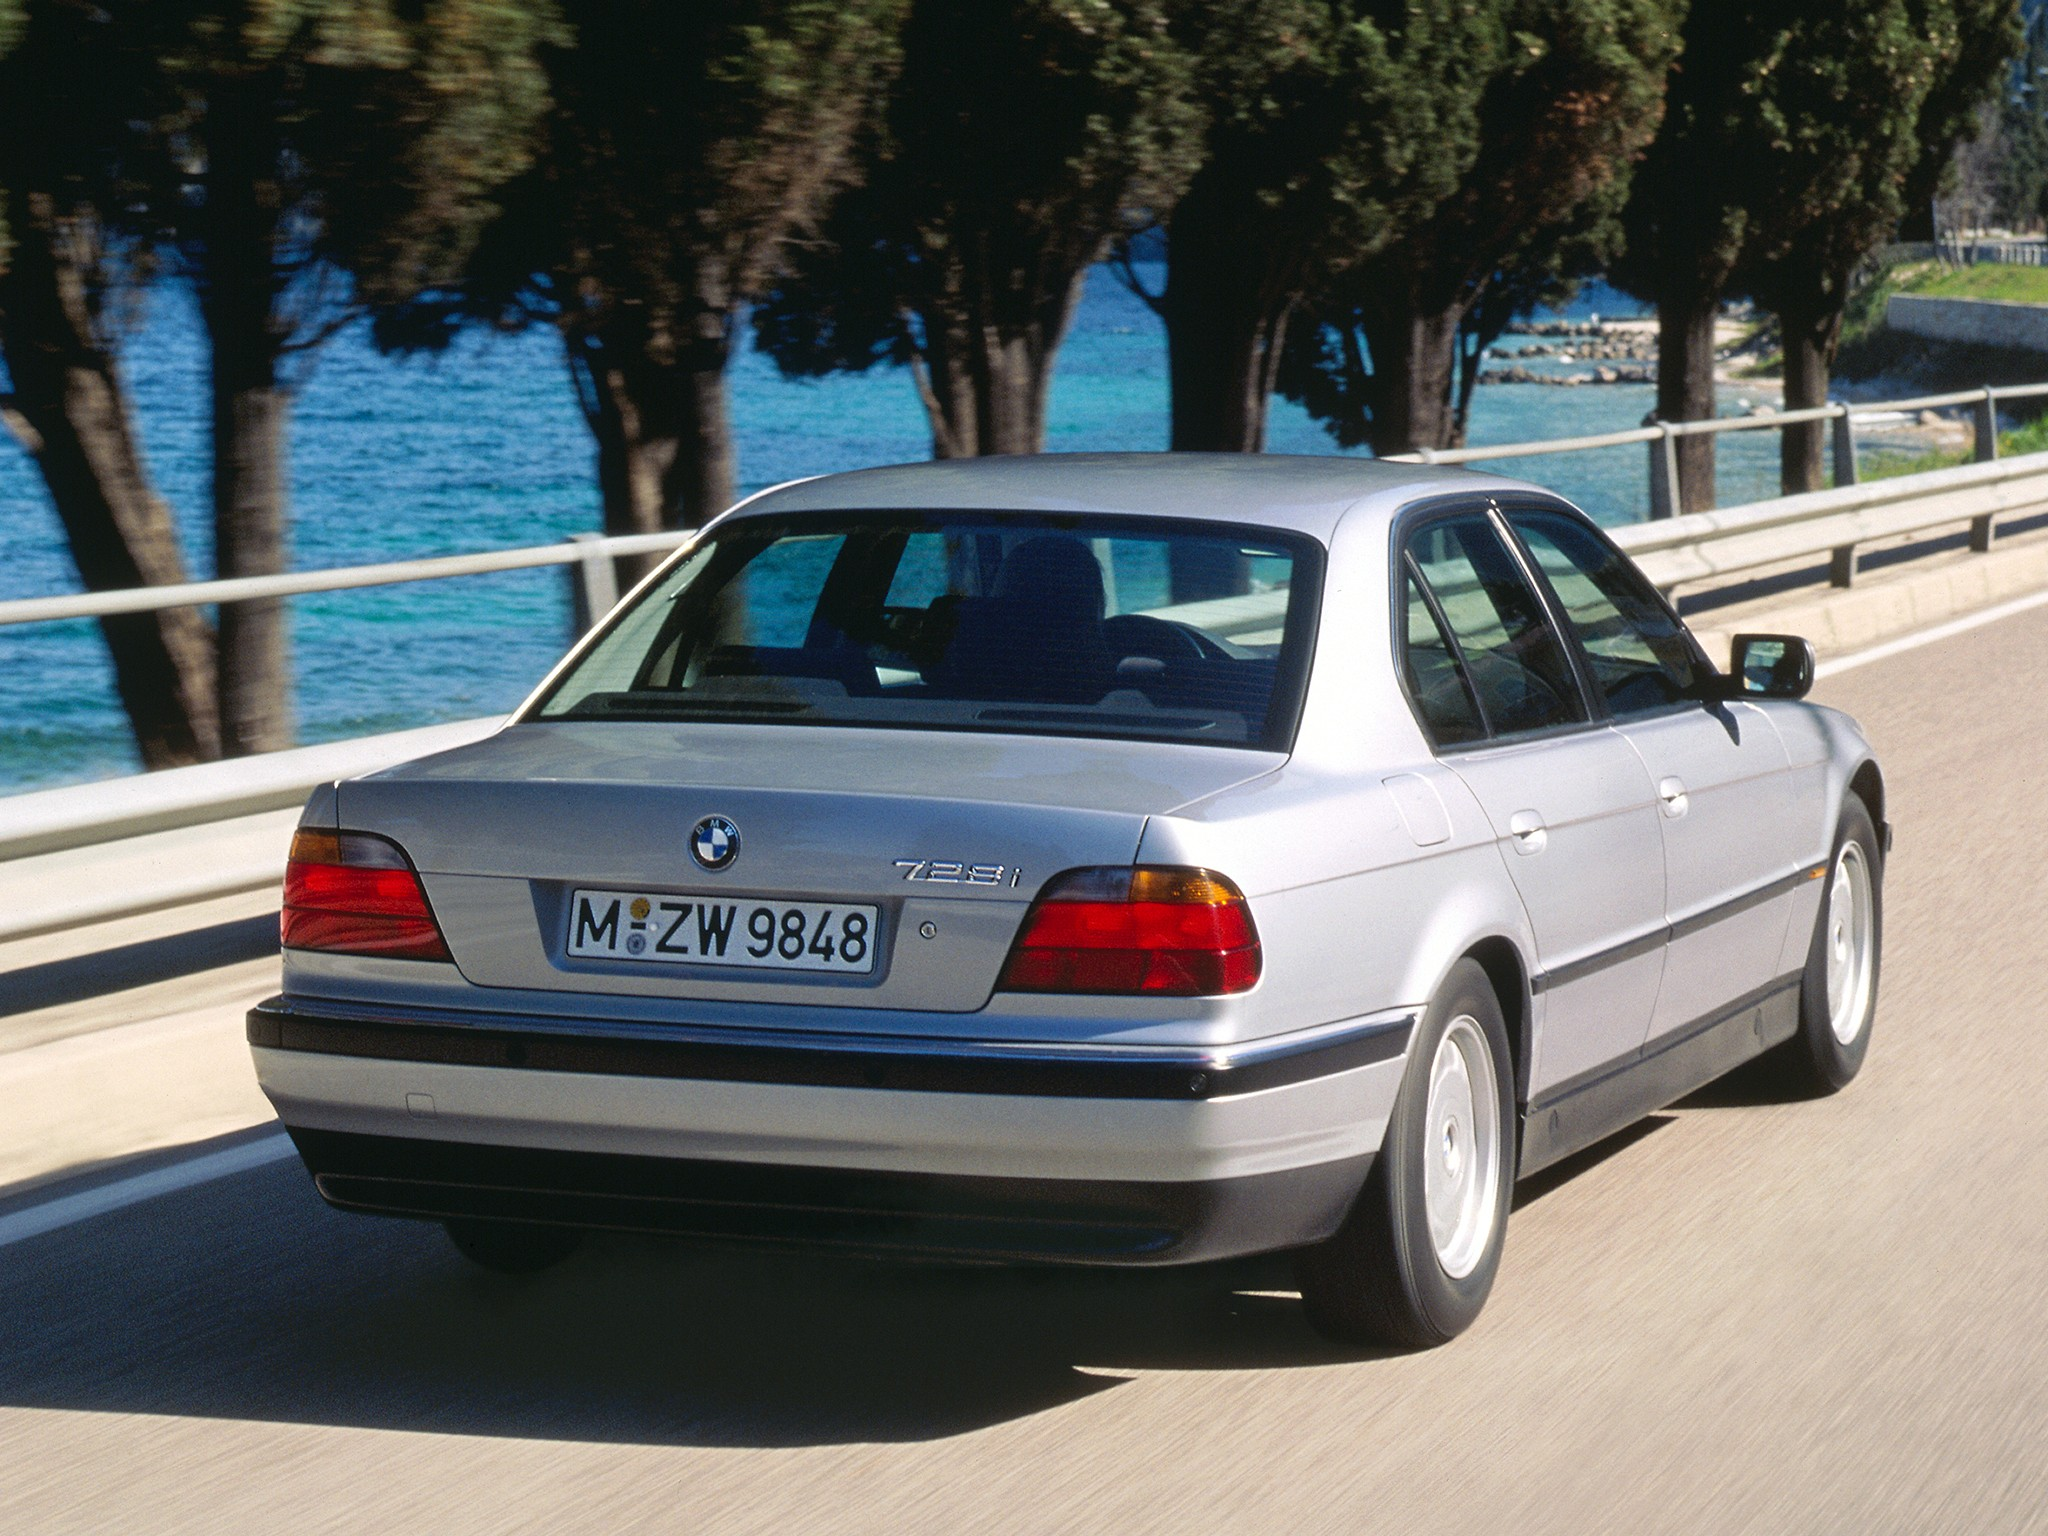 BMW 7 series 730i 1995 photo - 11